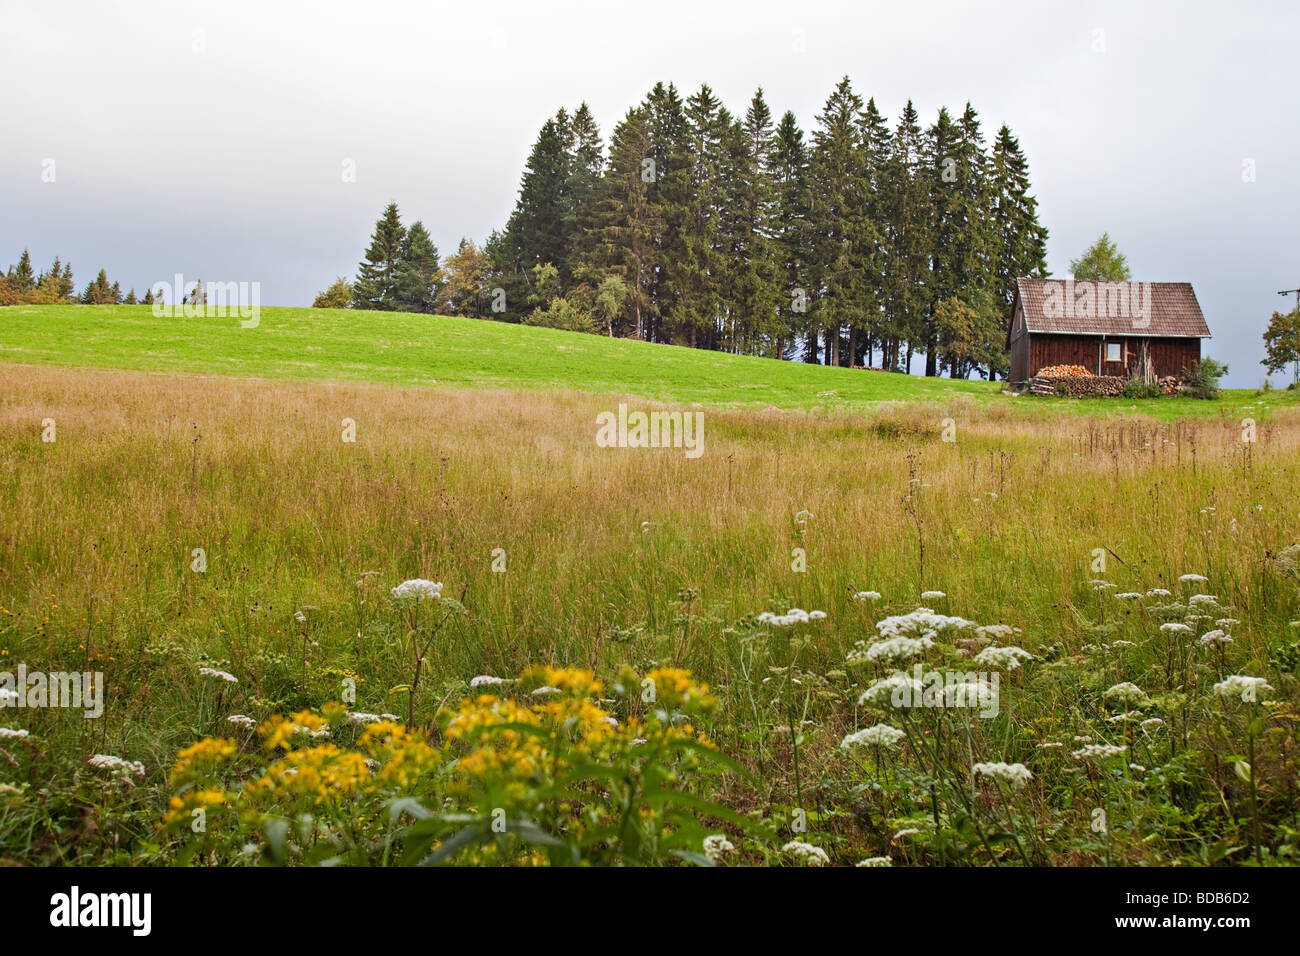 Hill in Schwarzwald on the European Watershed line next to Danube river sources. Schwarzwald, Germany. - Stock Image